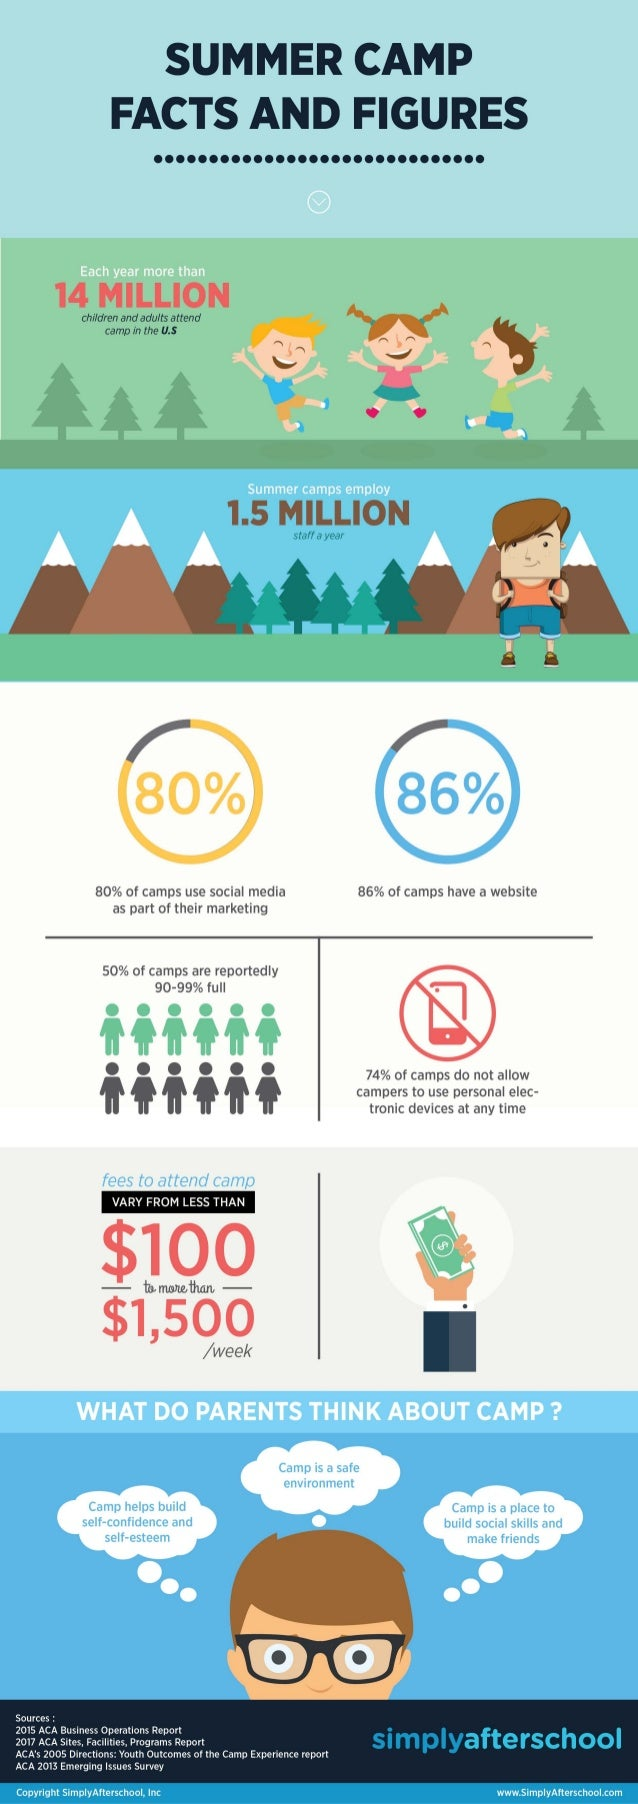 Summer camp infographic and fact